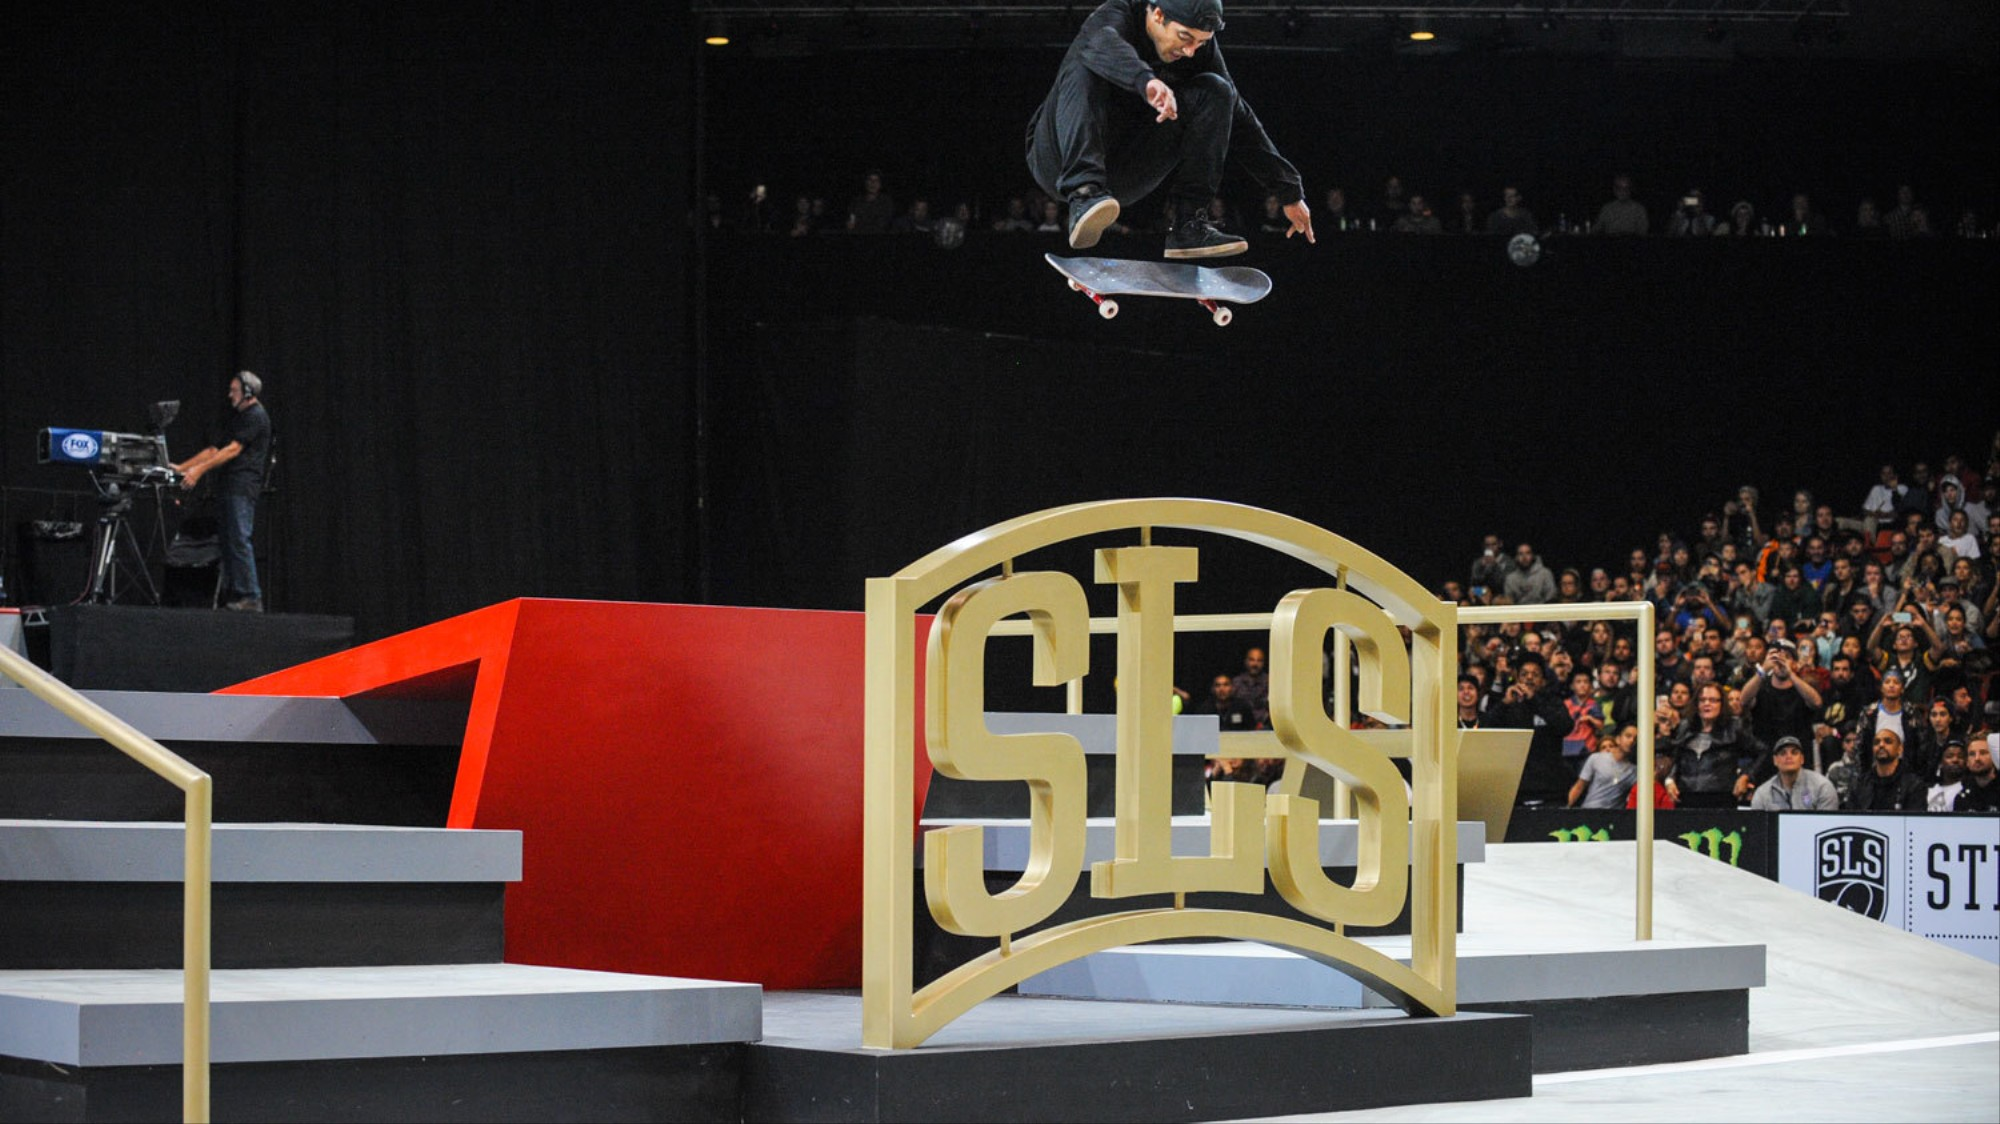 Is Street League Skateboarding a Sell-Out? - VICE